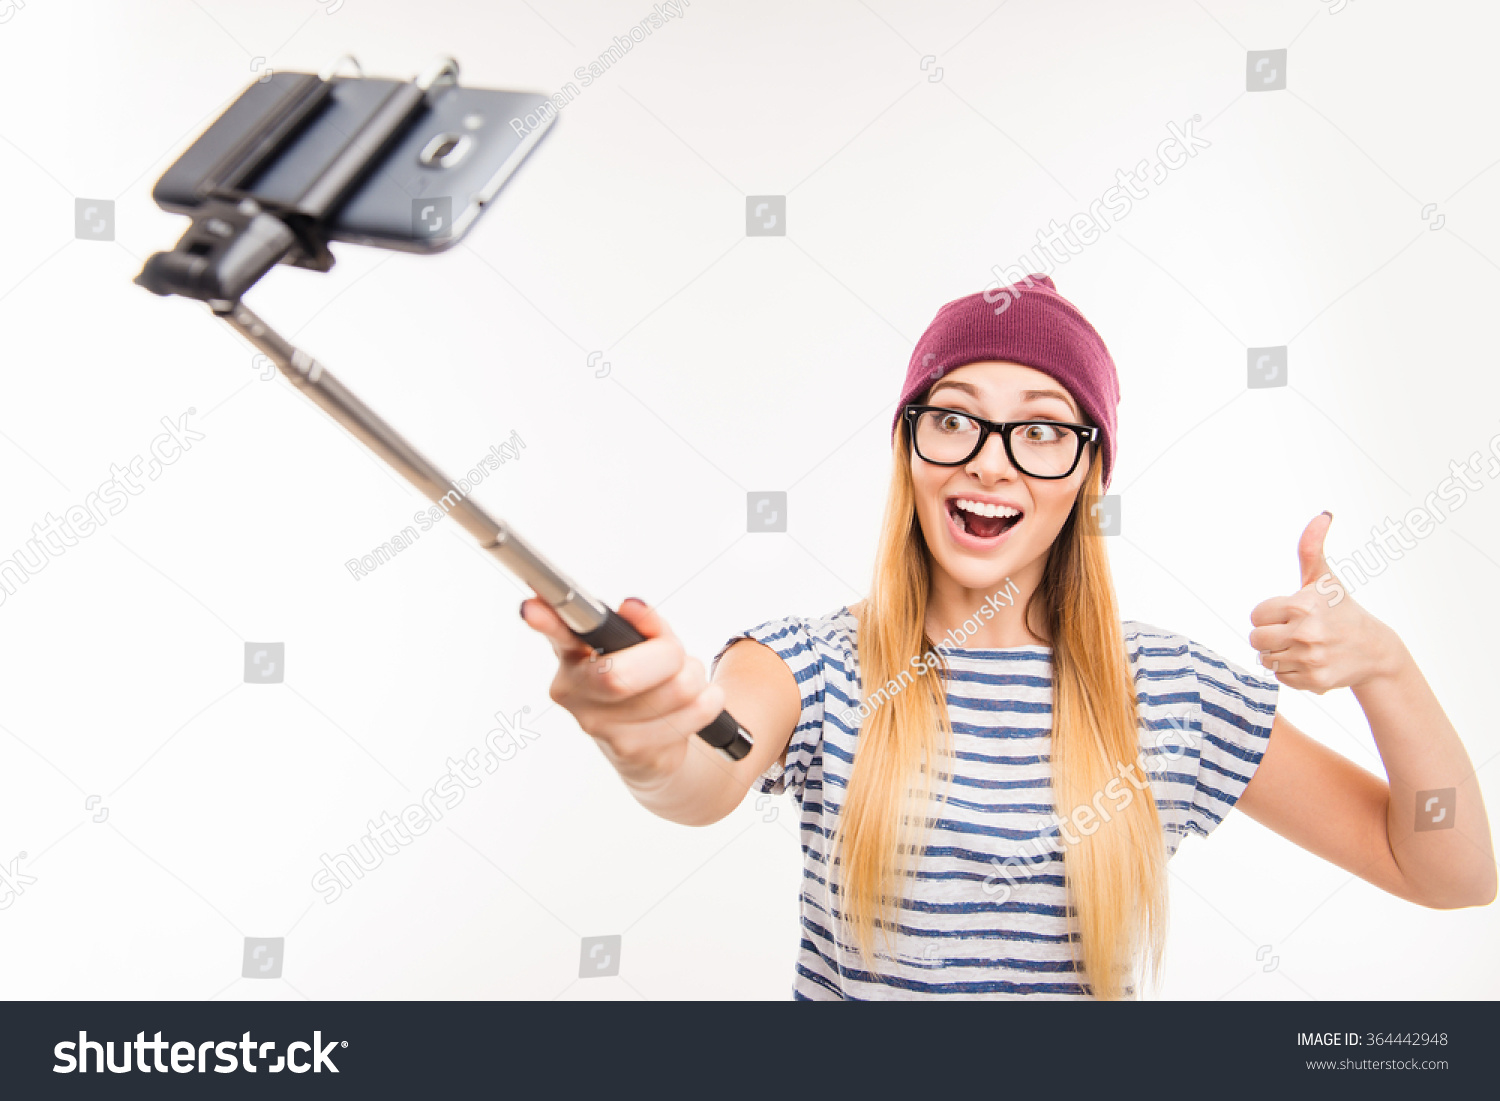 happy girl in cap and glasses making photo by selfie stick and thumbs up 364442948 shutterstock. Black Bedroom Furniture Sets. Home Design Ideas